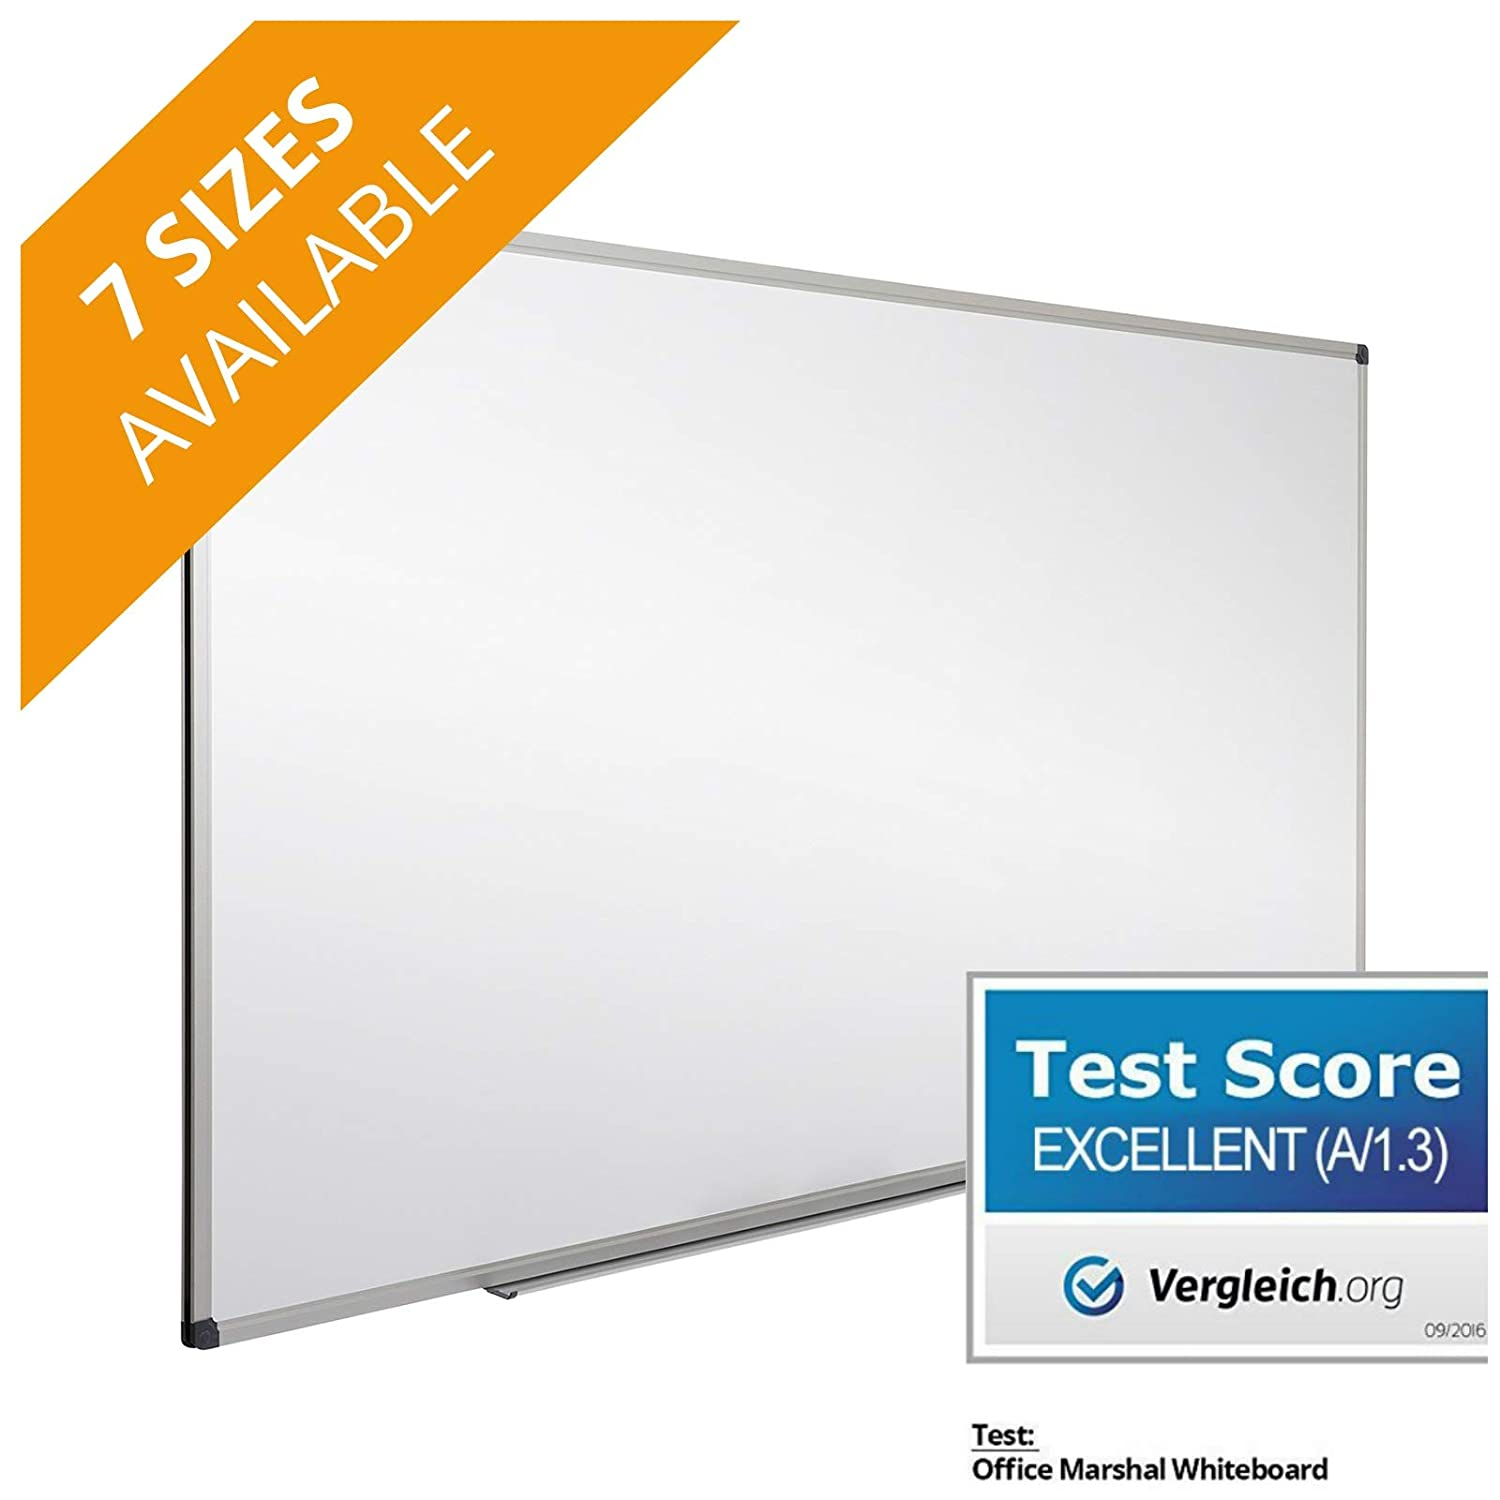 Office Marshal Professional Magnetic Dry Erase Board | White Board | Test Score: Excellent (A/1.3) - 18' x 12' 4058171282813